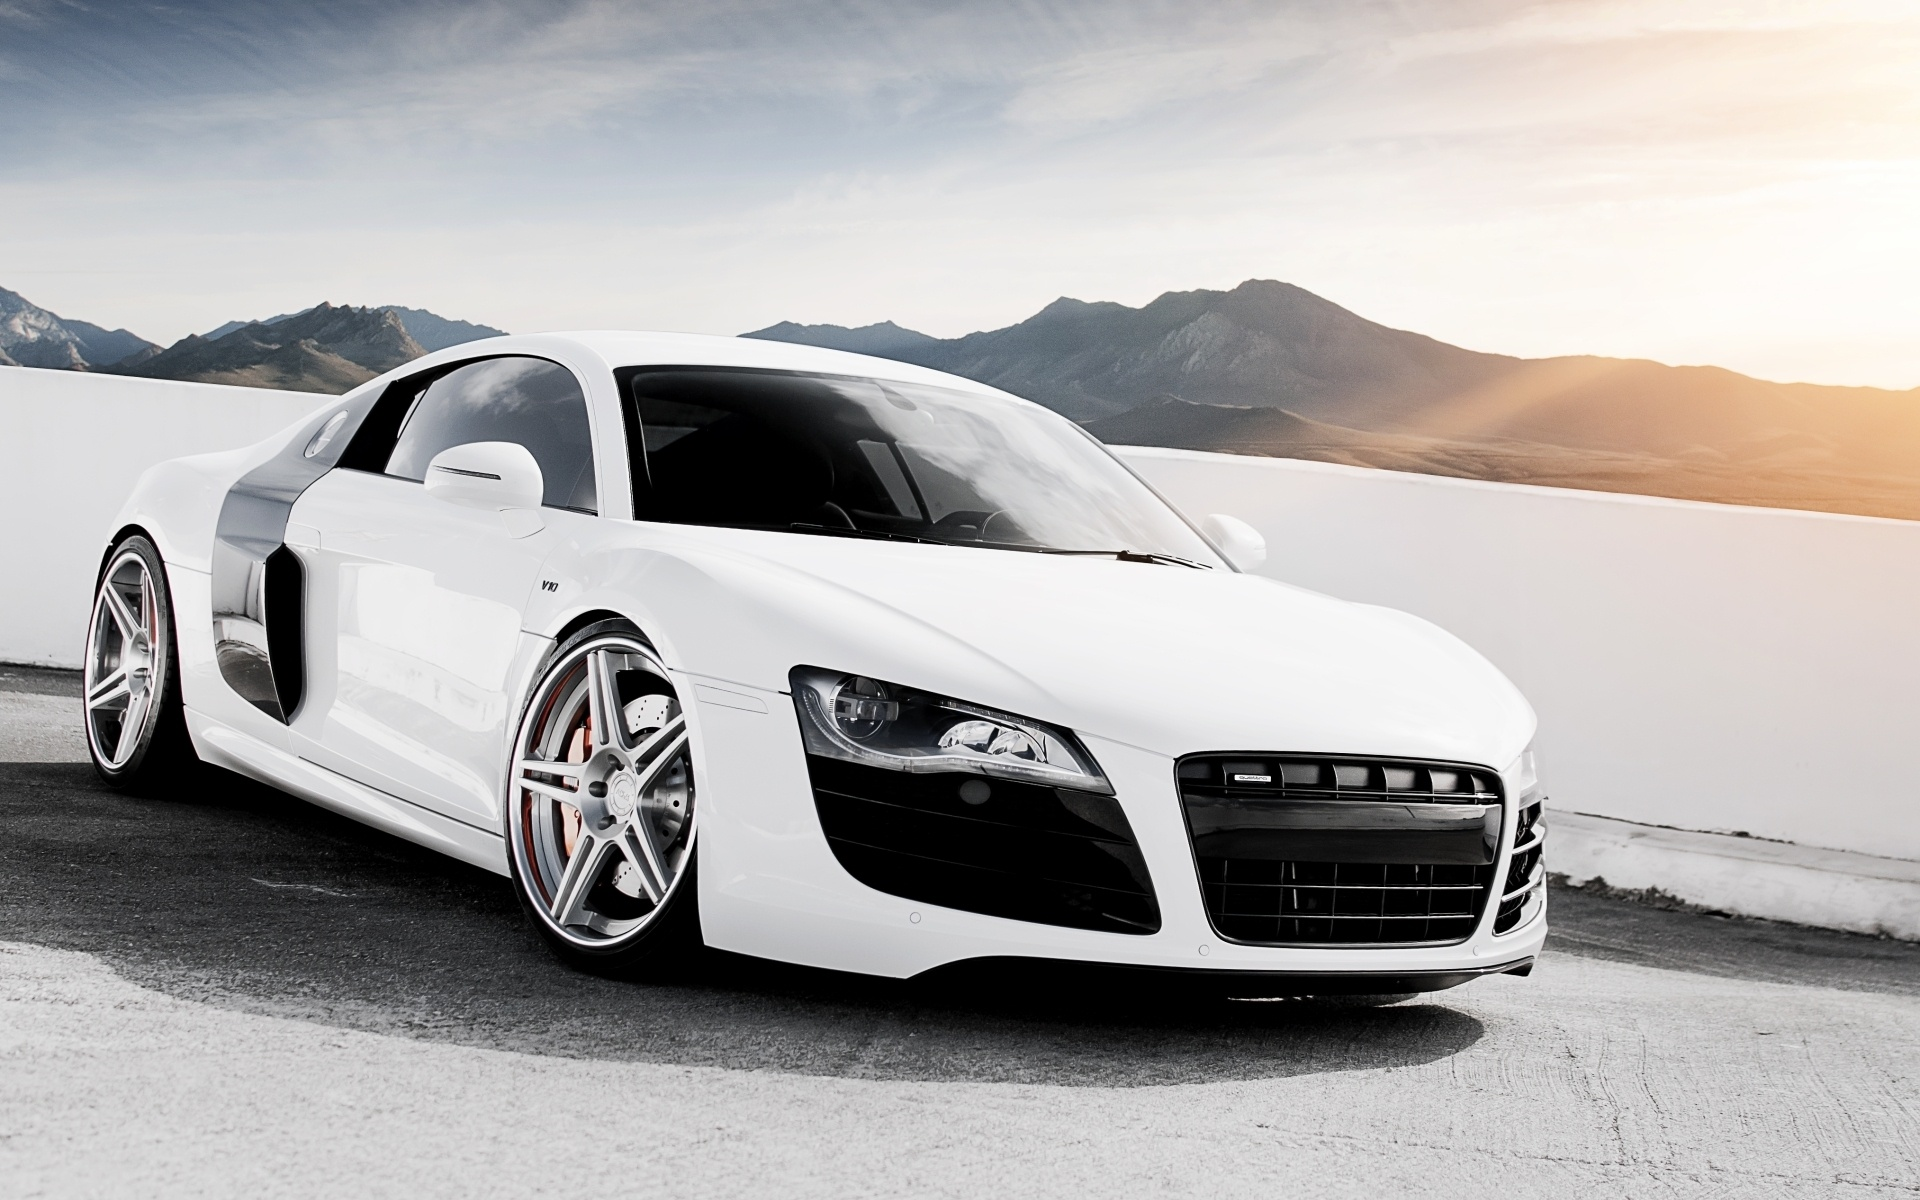 fonds d 39 cran audi r8 v10 blanc supercar 1920x1200 hd image. Black Bedroom Furniture Sets. Home Design Ideas